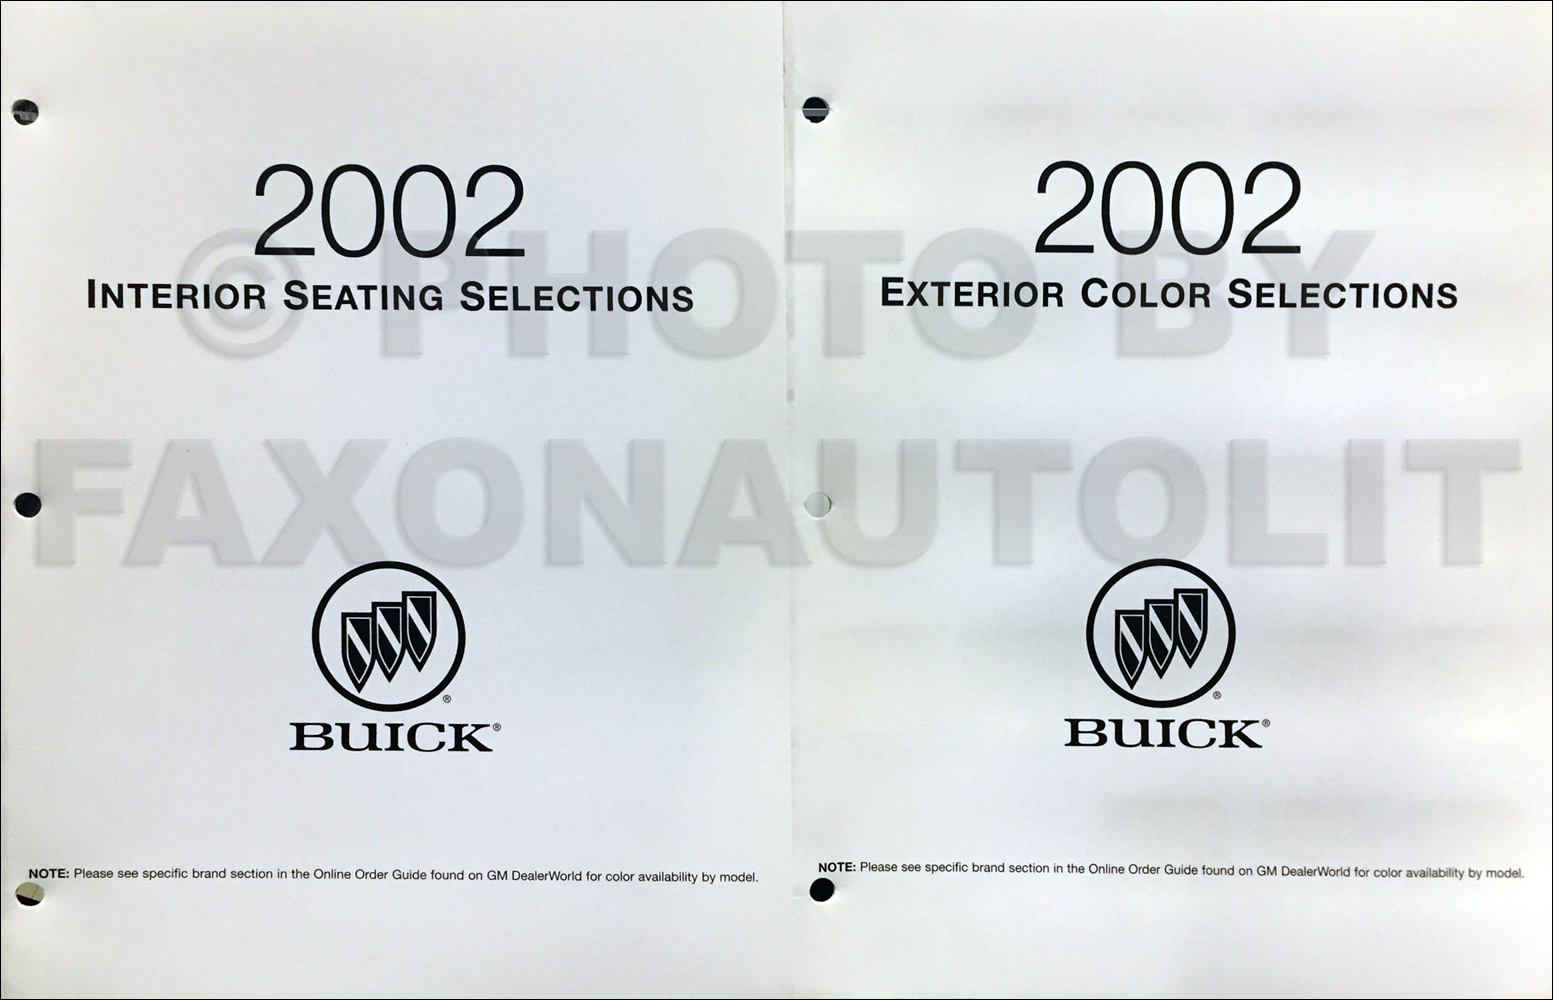 2002 Buick Color & Upholstery Folder Set Original